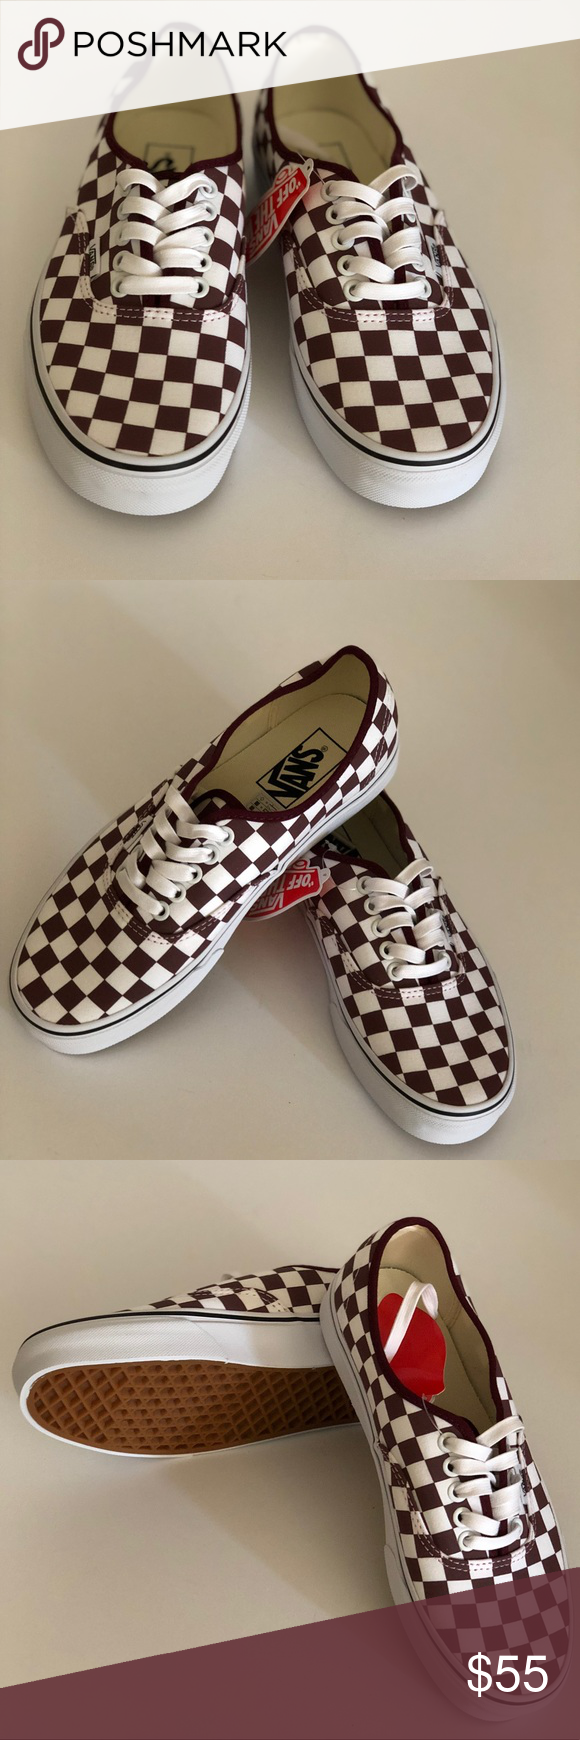 037396a1df Vans Authentic Checkerboard Port Royale Vans Authentic Checkerboard Port  Royale Condition  New with box. Size  Women s 8